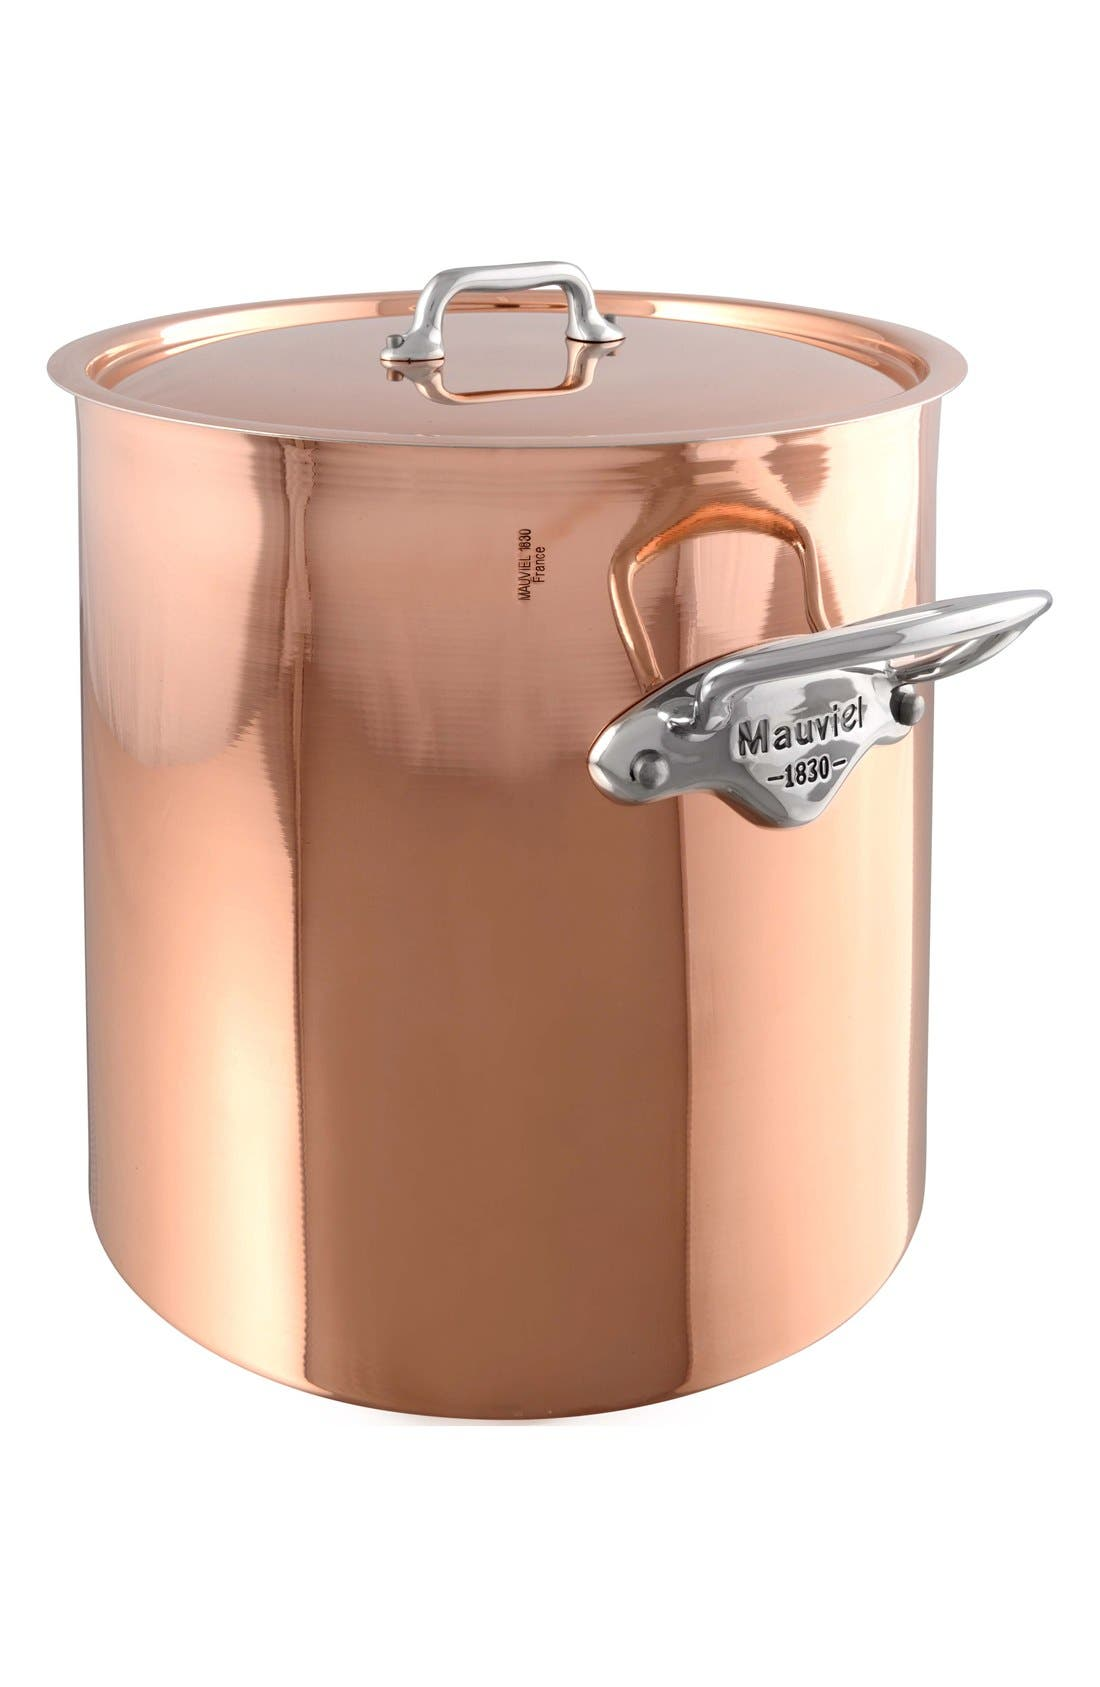 Mauviel M'héritage - M'150s Copper & Stainless Steel Stew Pot with Copper Lid